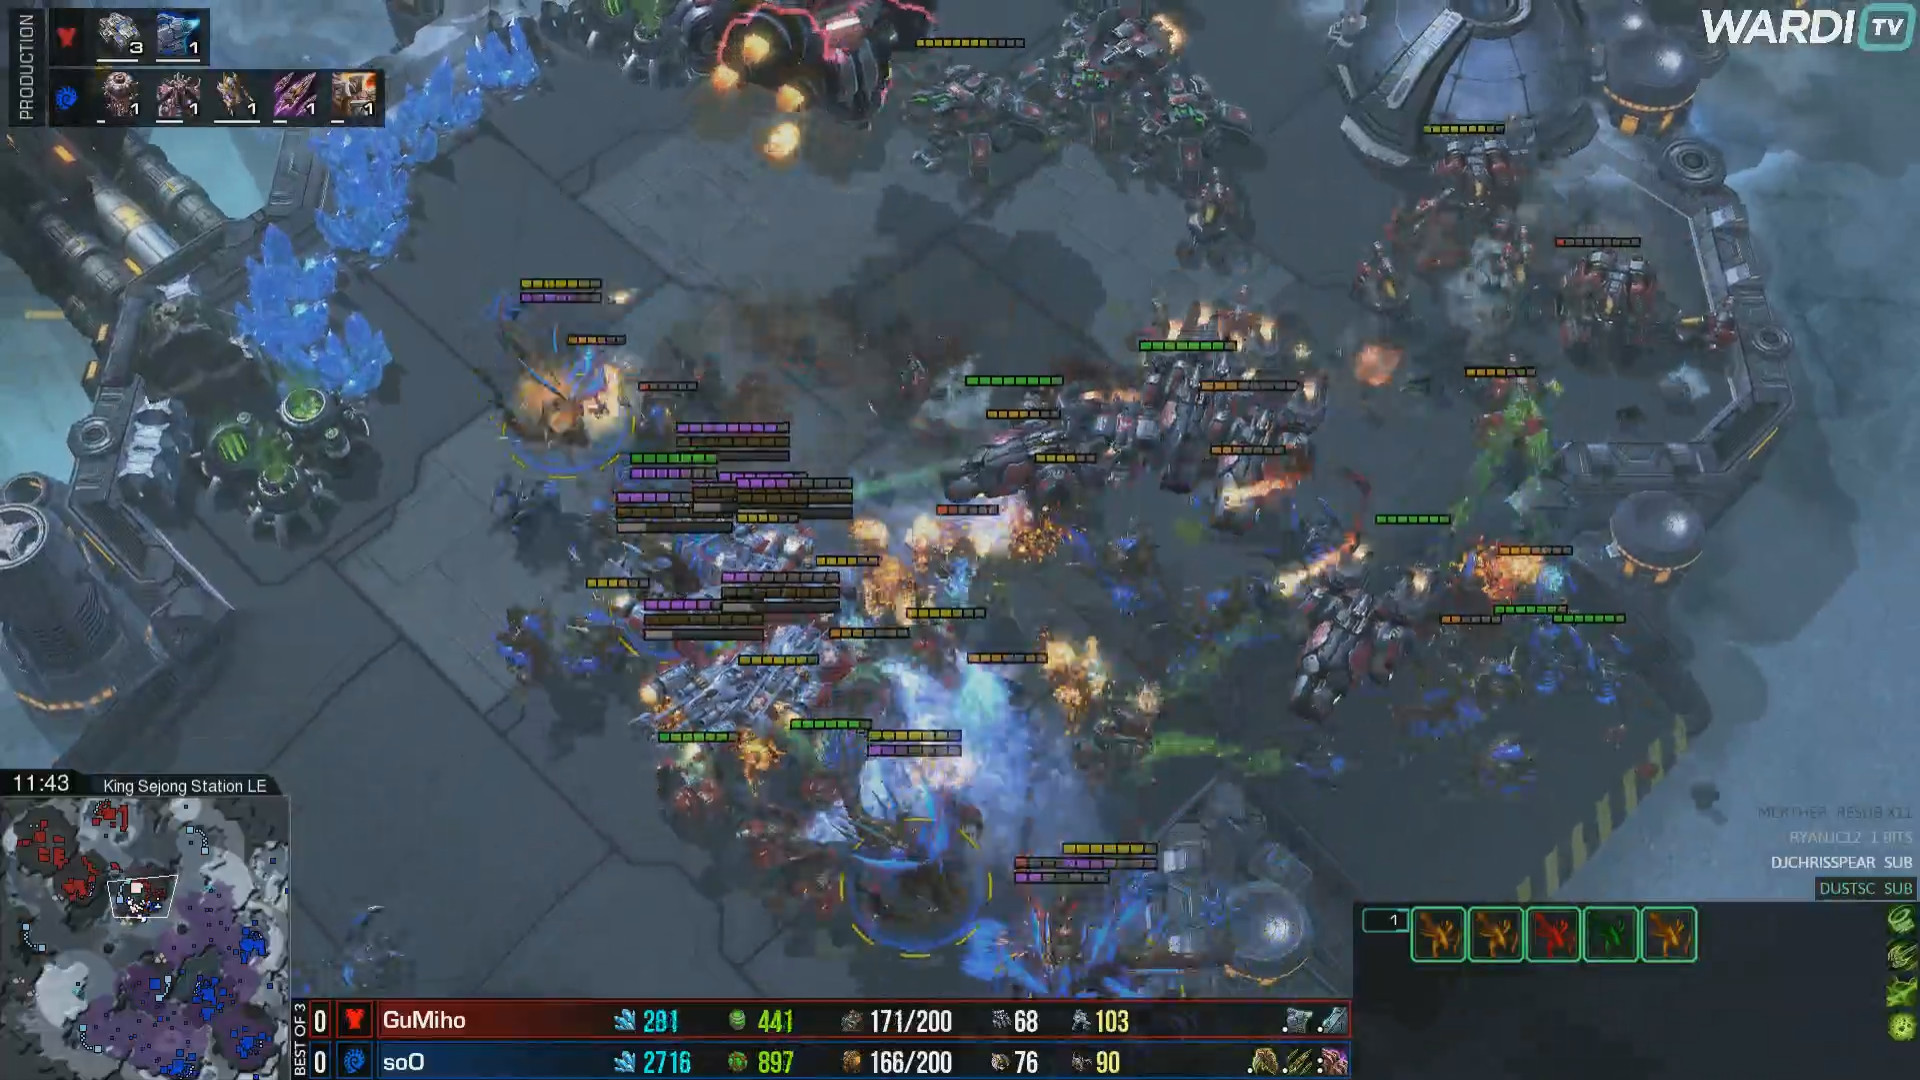 GuMiho made it look easy against soO in Game 1 in the qualifier as his mech army crushed soO in the mid-game.